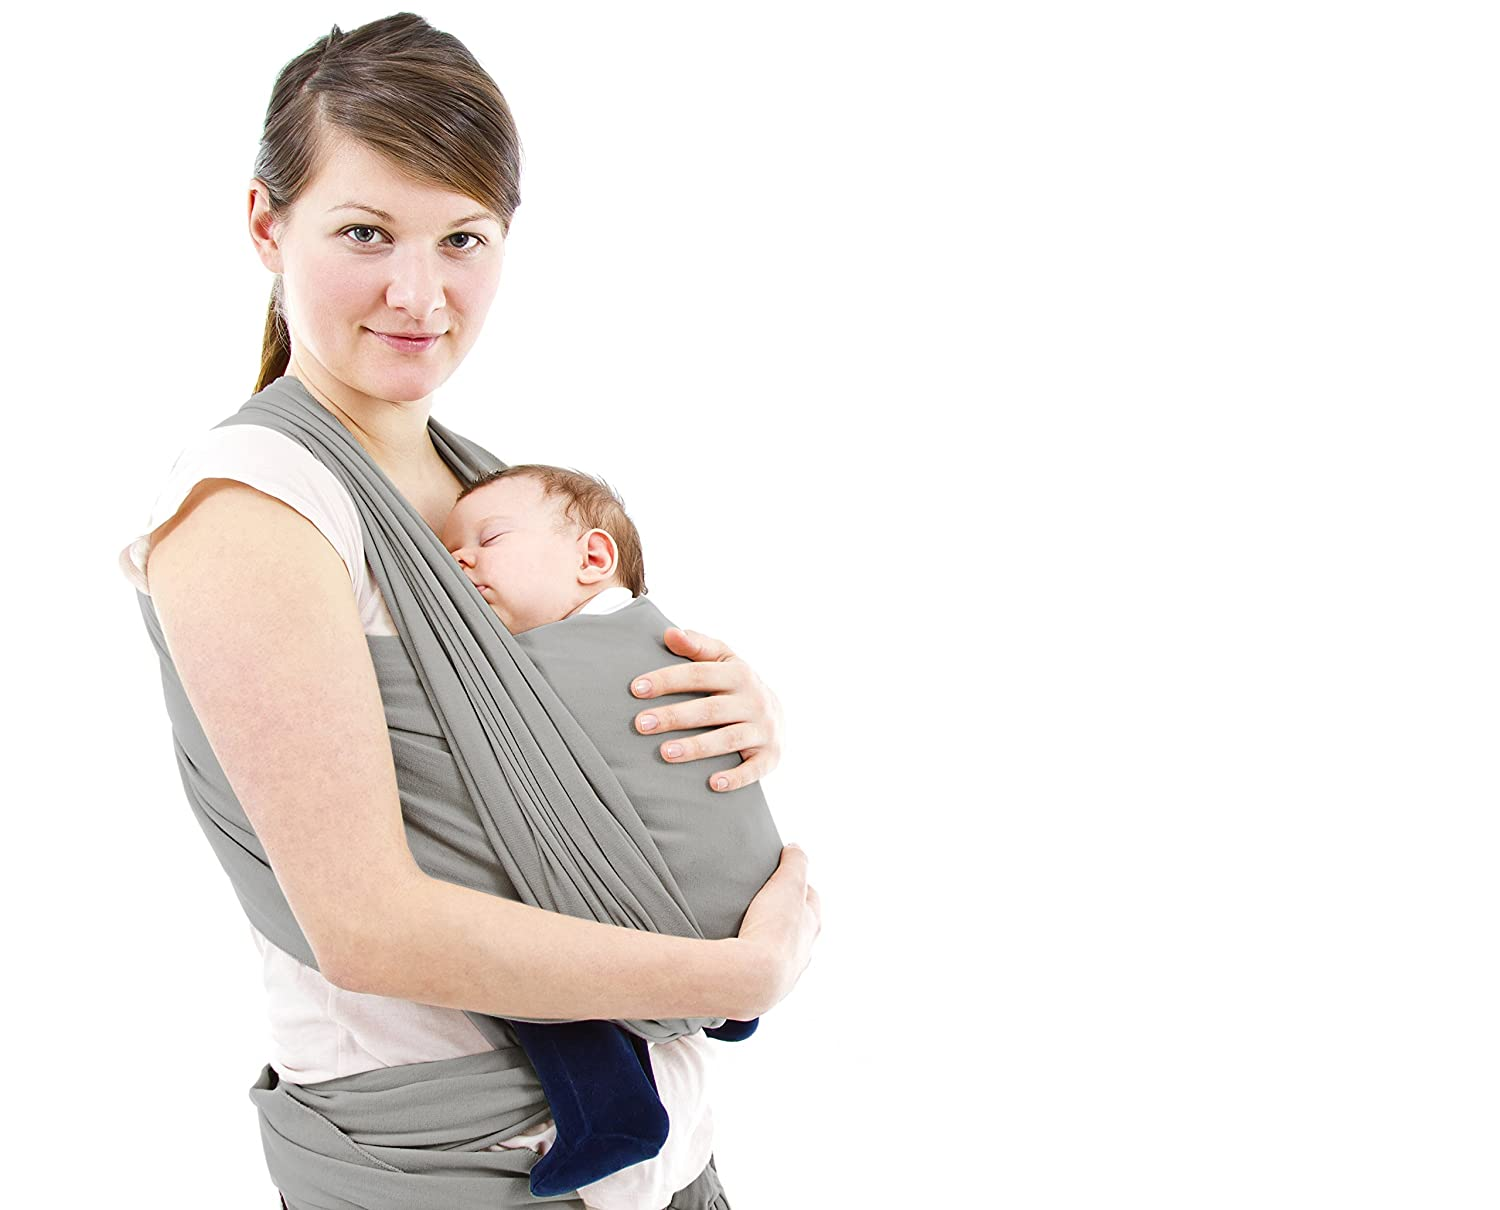 Baby Sling Wrap 5 Colors, Use as Nursing Cover Comfy Stretchy Infant Newborn /& Toddler Sling Carrier Mesh is Breathable Lightweight Striped Swaddle /& for Breastfeeding Postpartum Belt Black White